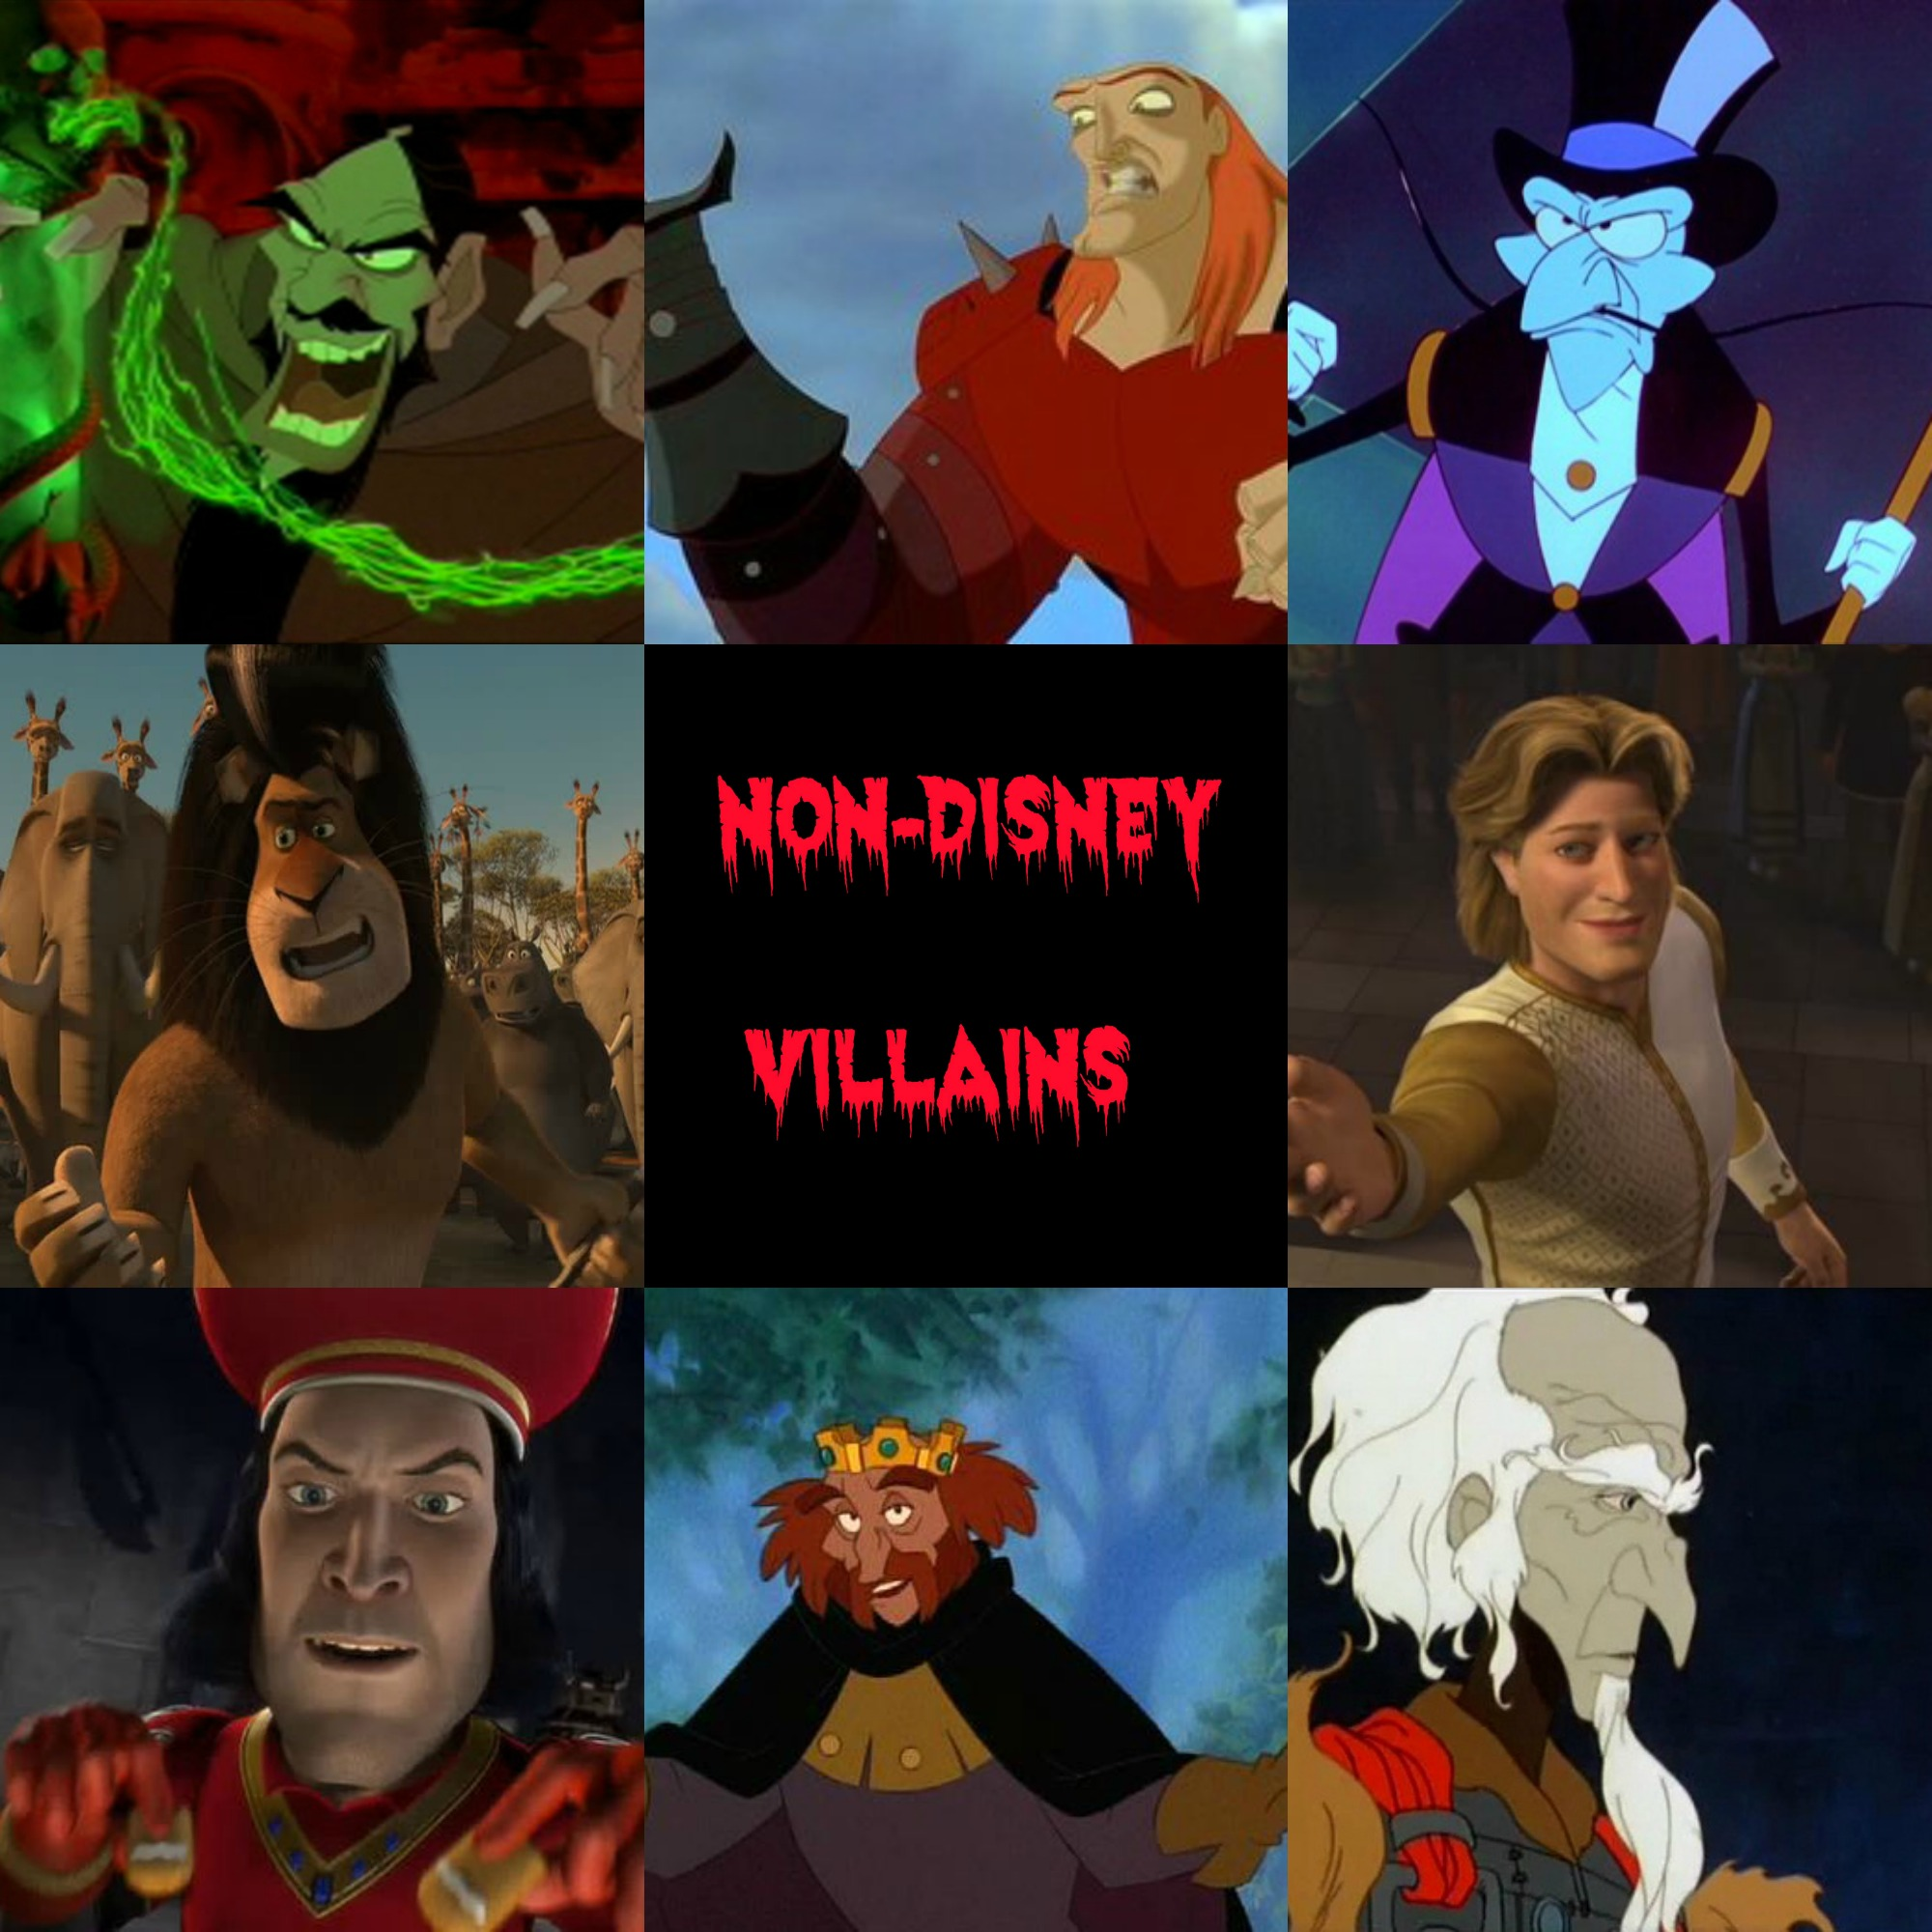 nondisney villains childhood animated movie villains